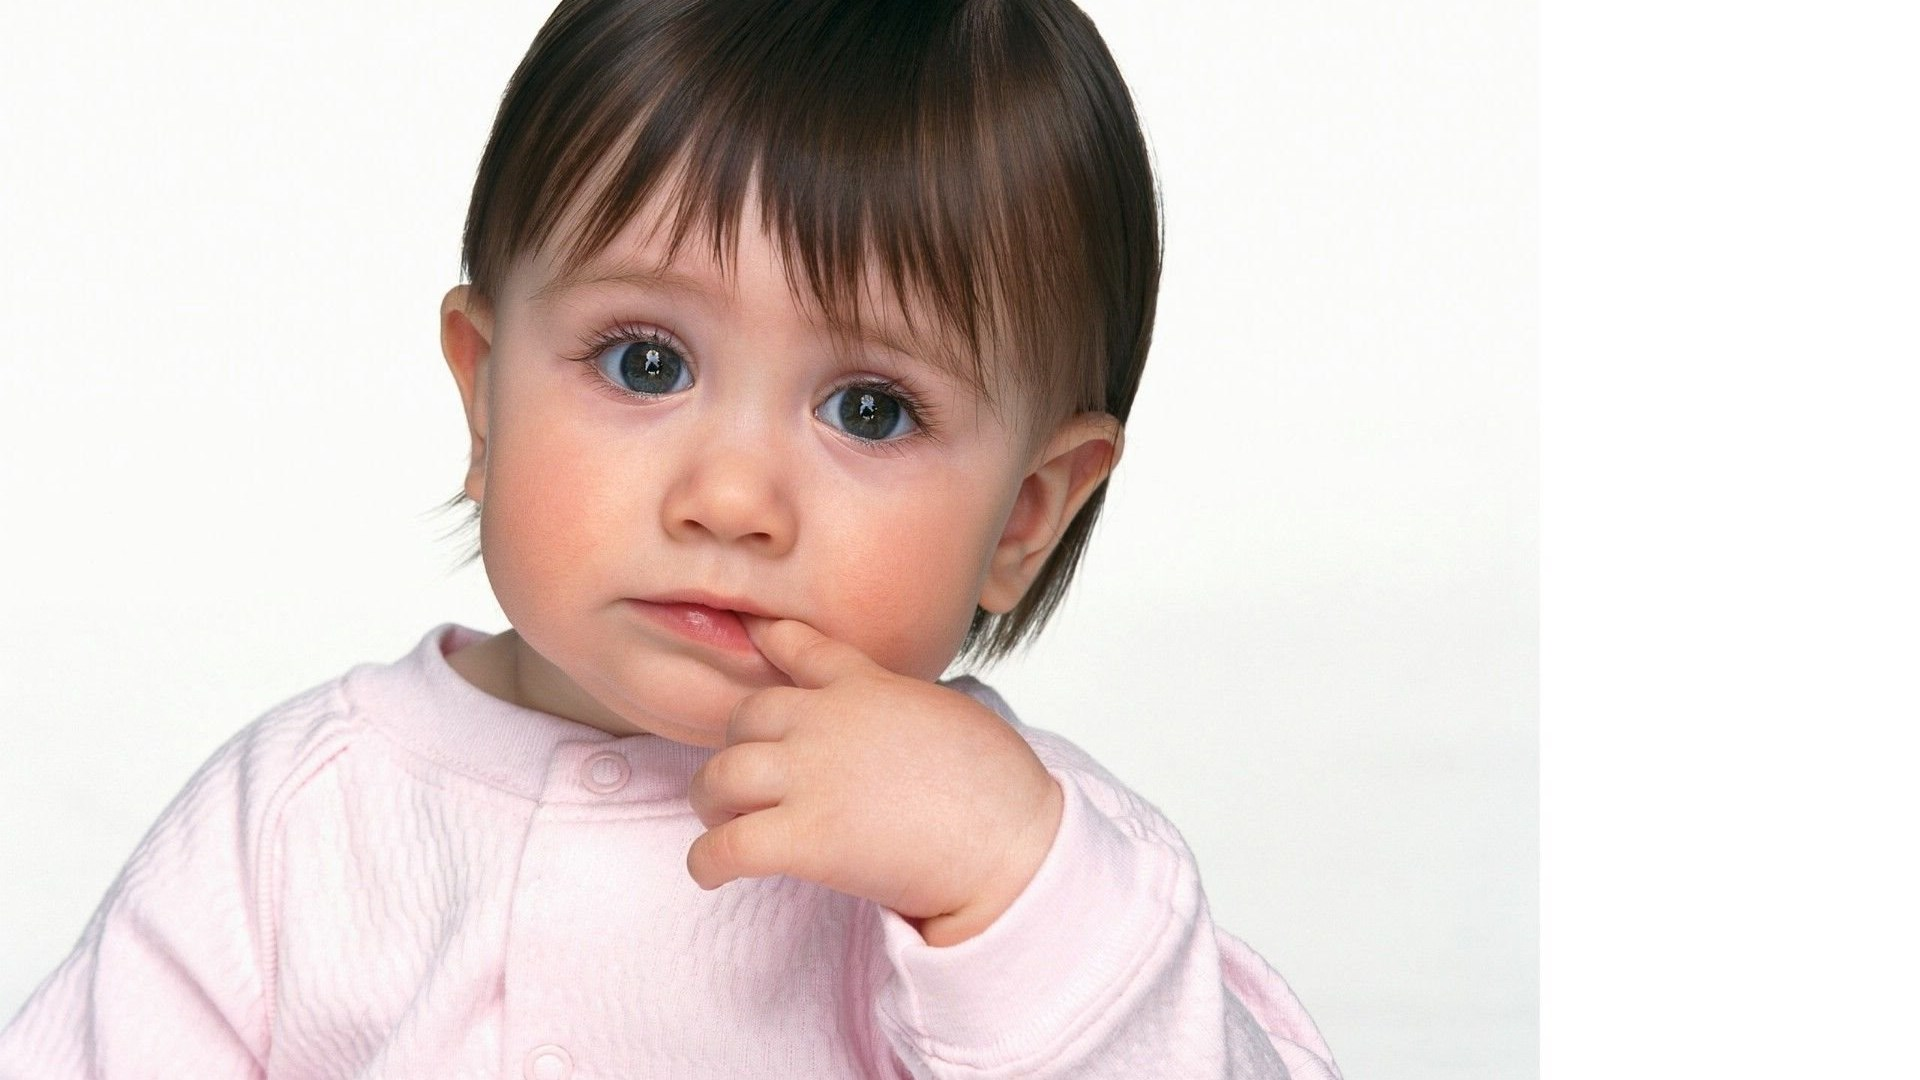 small cute baby photos hd wallpapers pretty desktop background